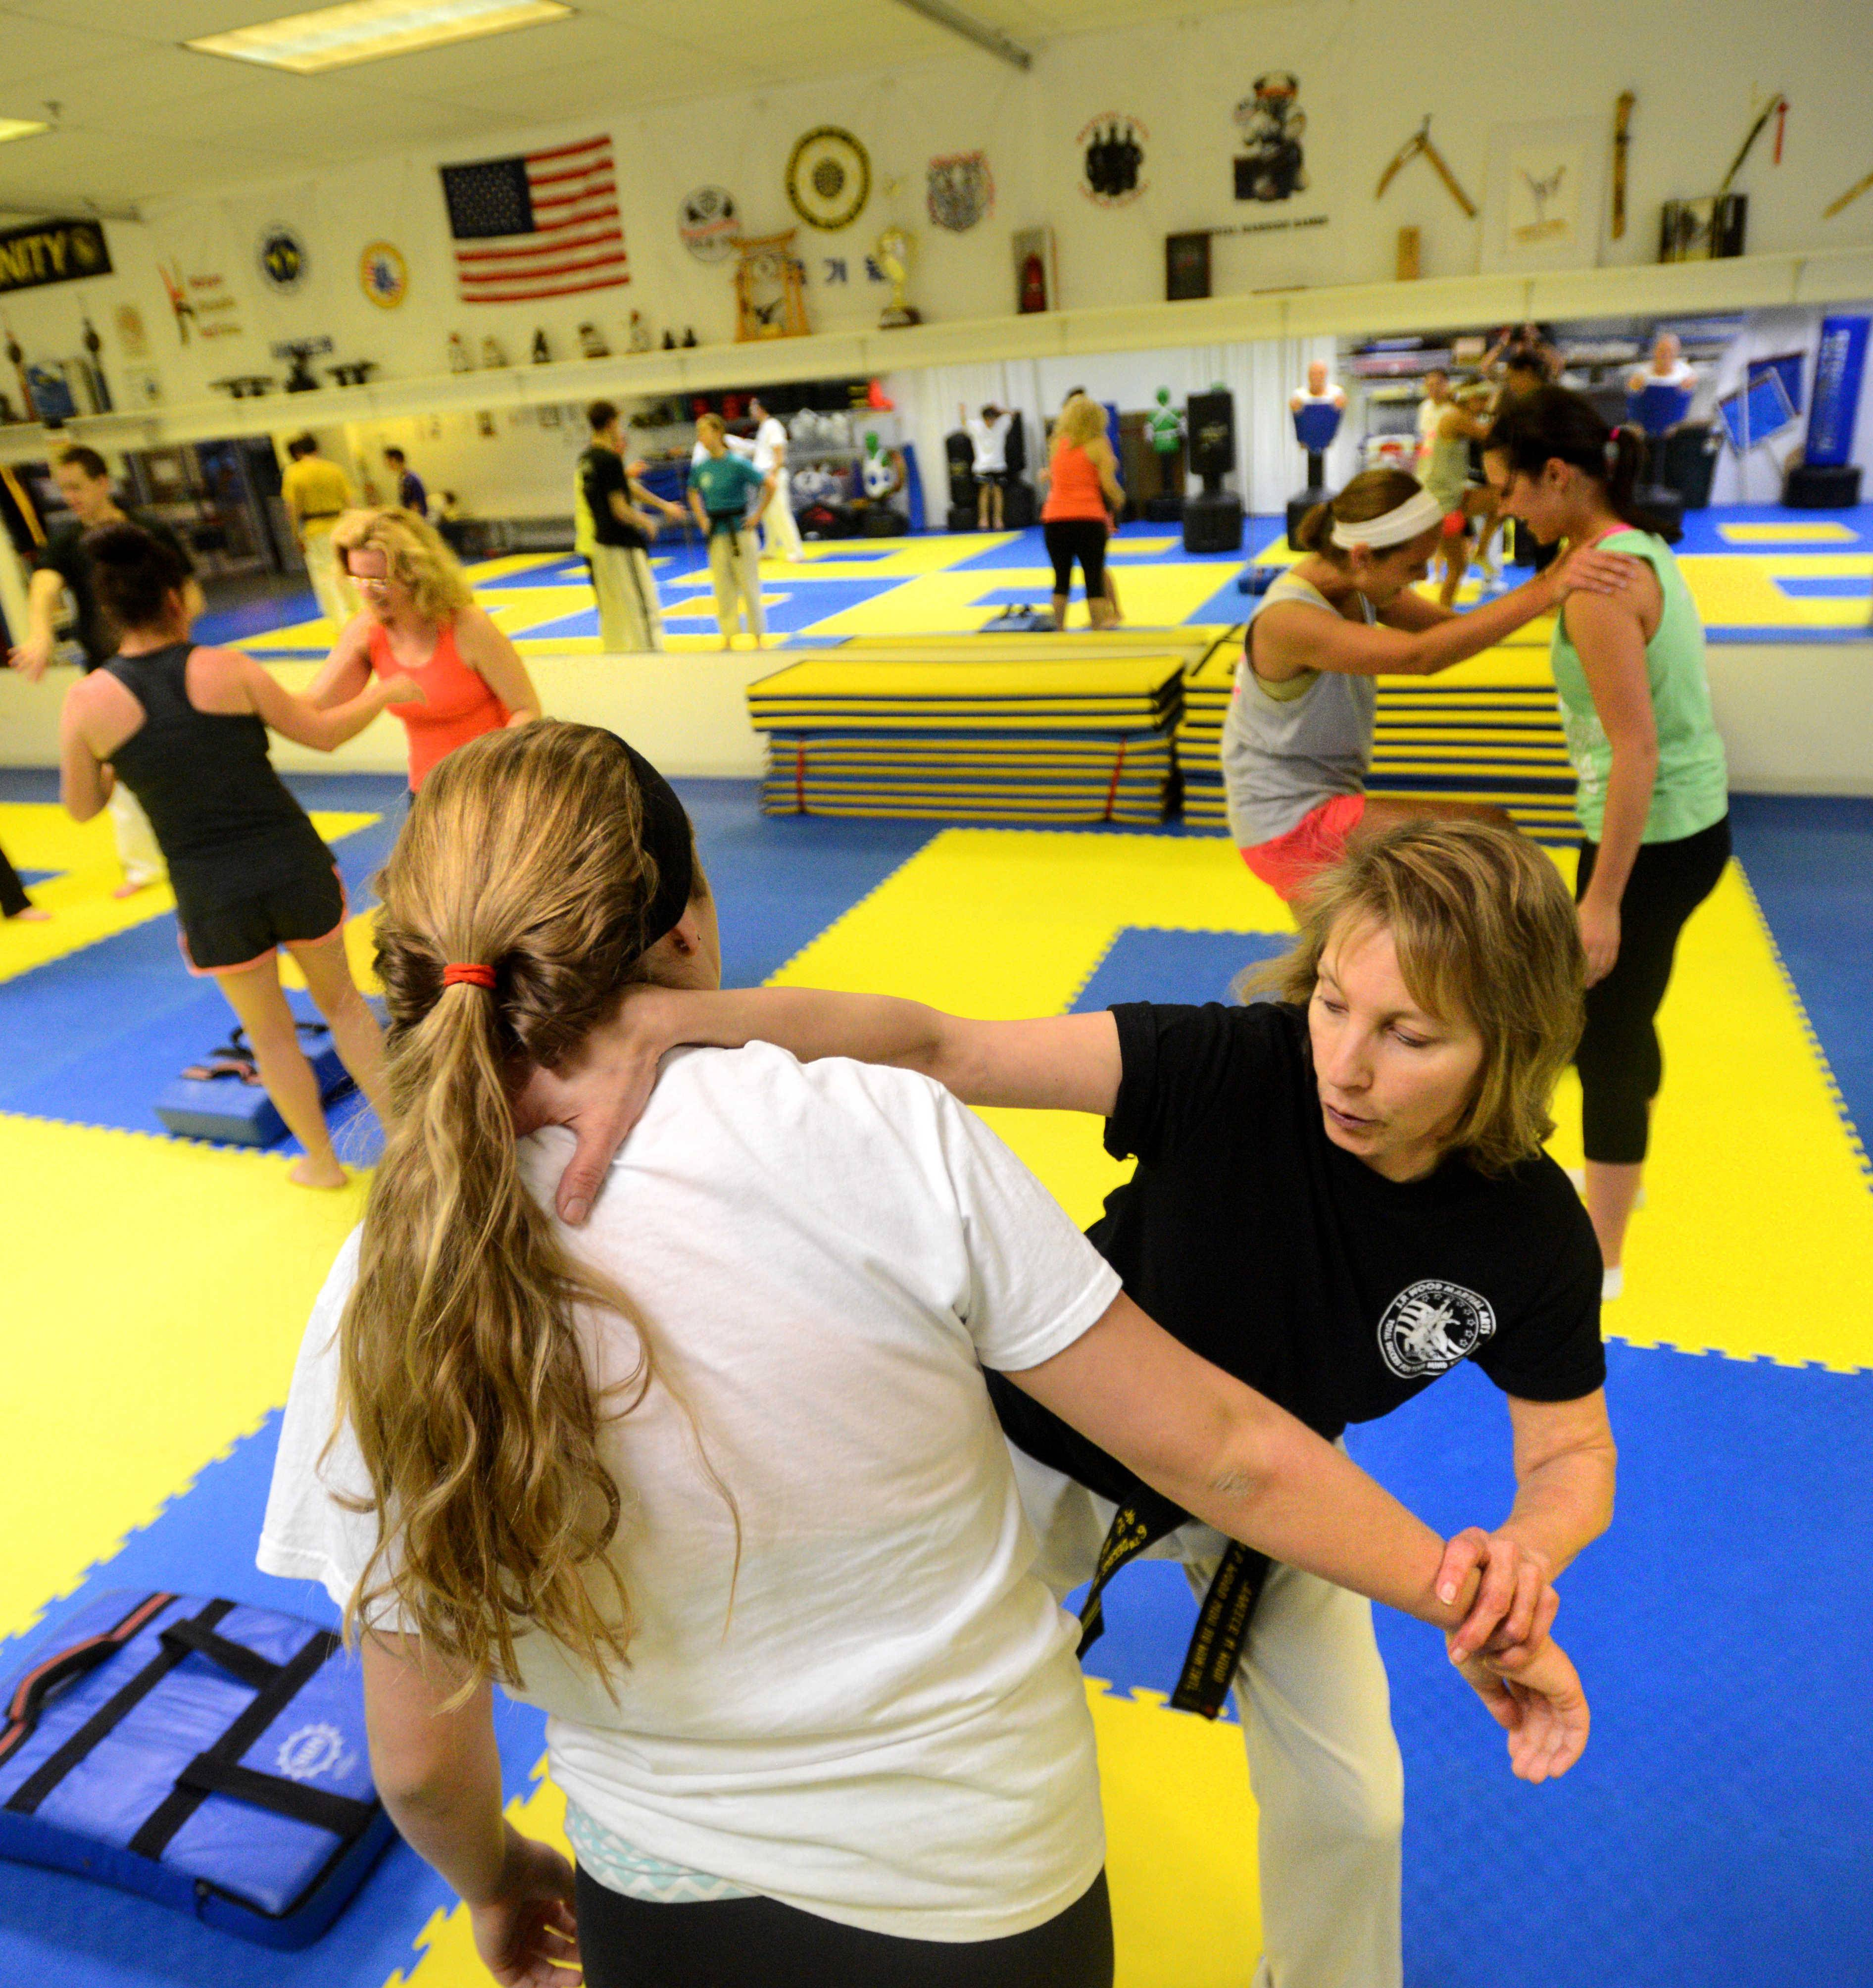 Instructor Jan Wood performs an escape move on Taylor Delapa of Palatine.